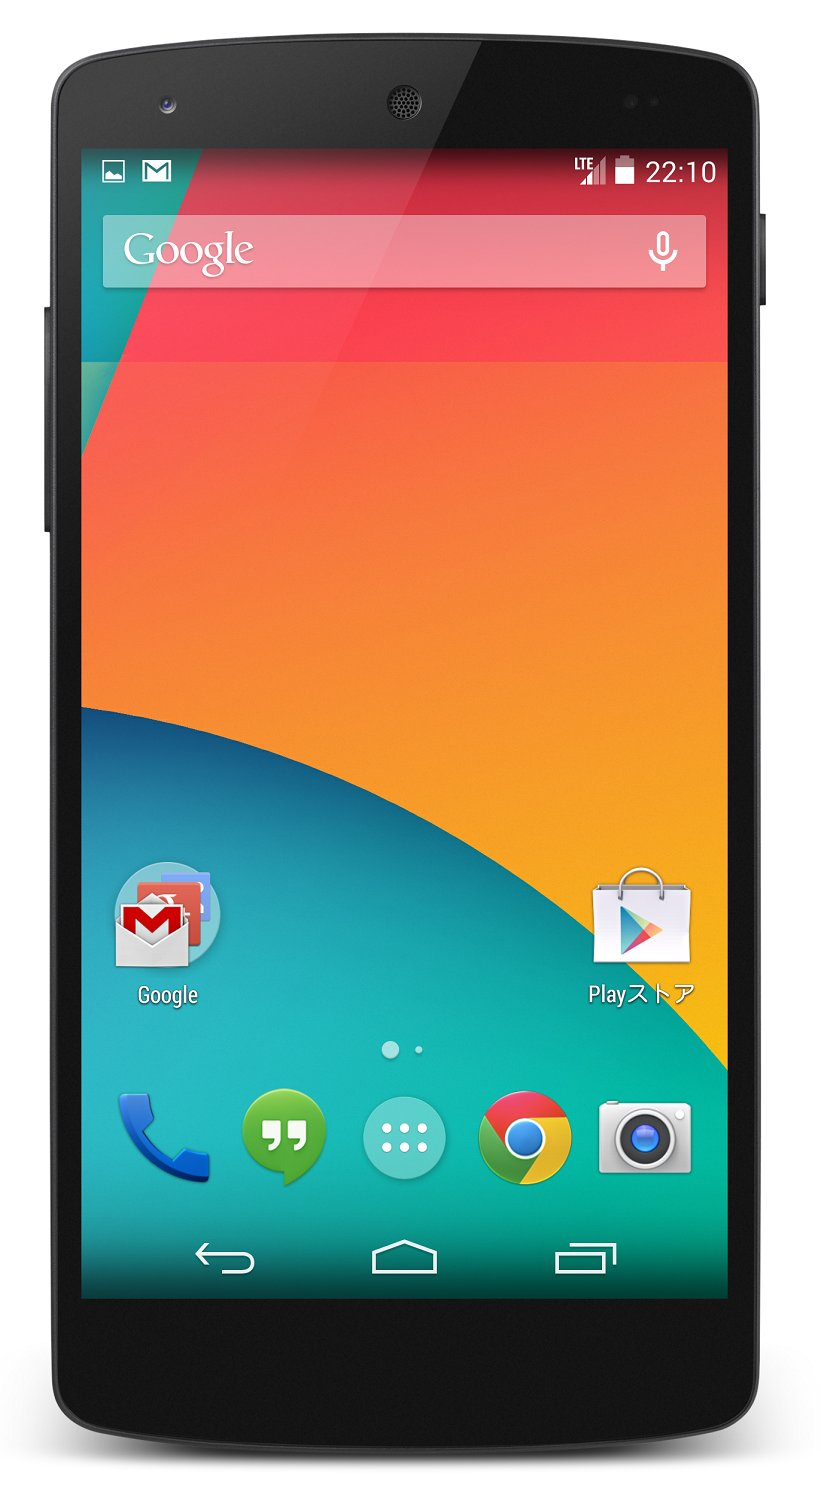 LG Google Nexus 5 D820 16GB Unlocked GSM 4G LTE Quad-Core Smartphone, Black w/ 8MP Camera (Certified Refurbished)